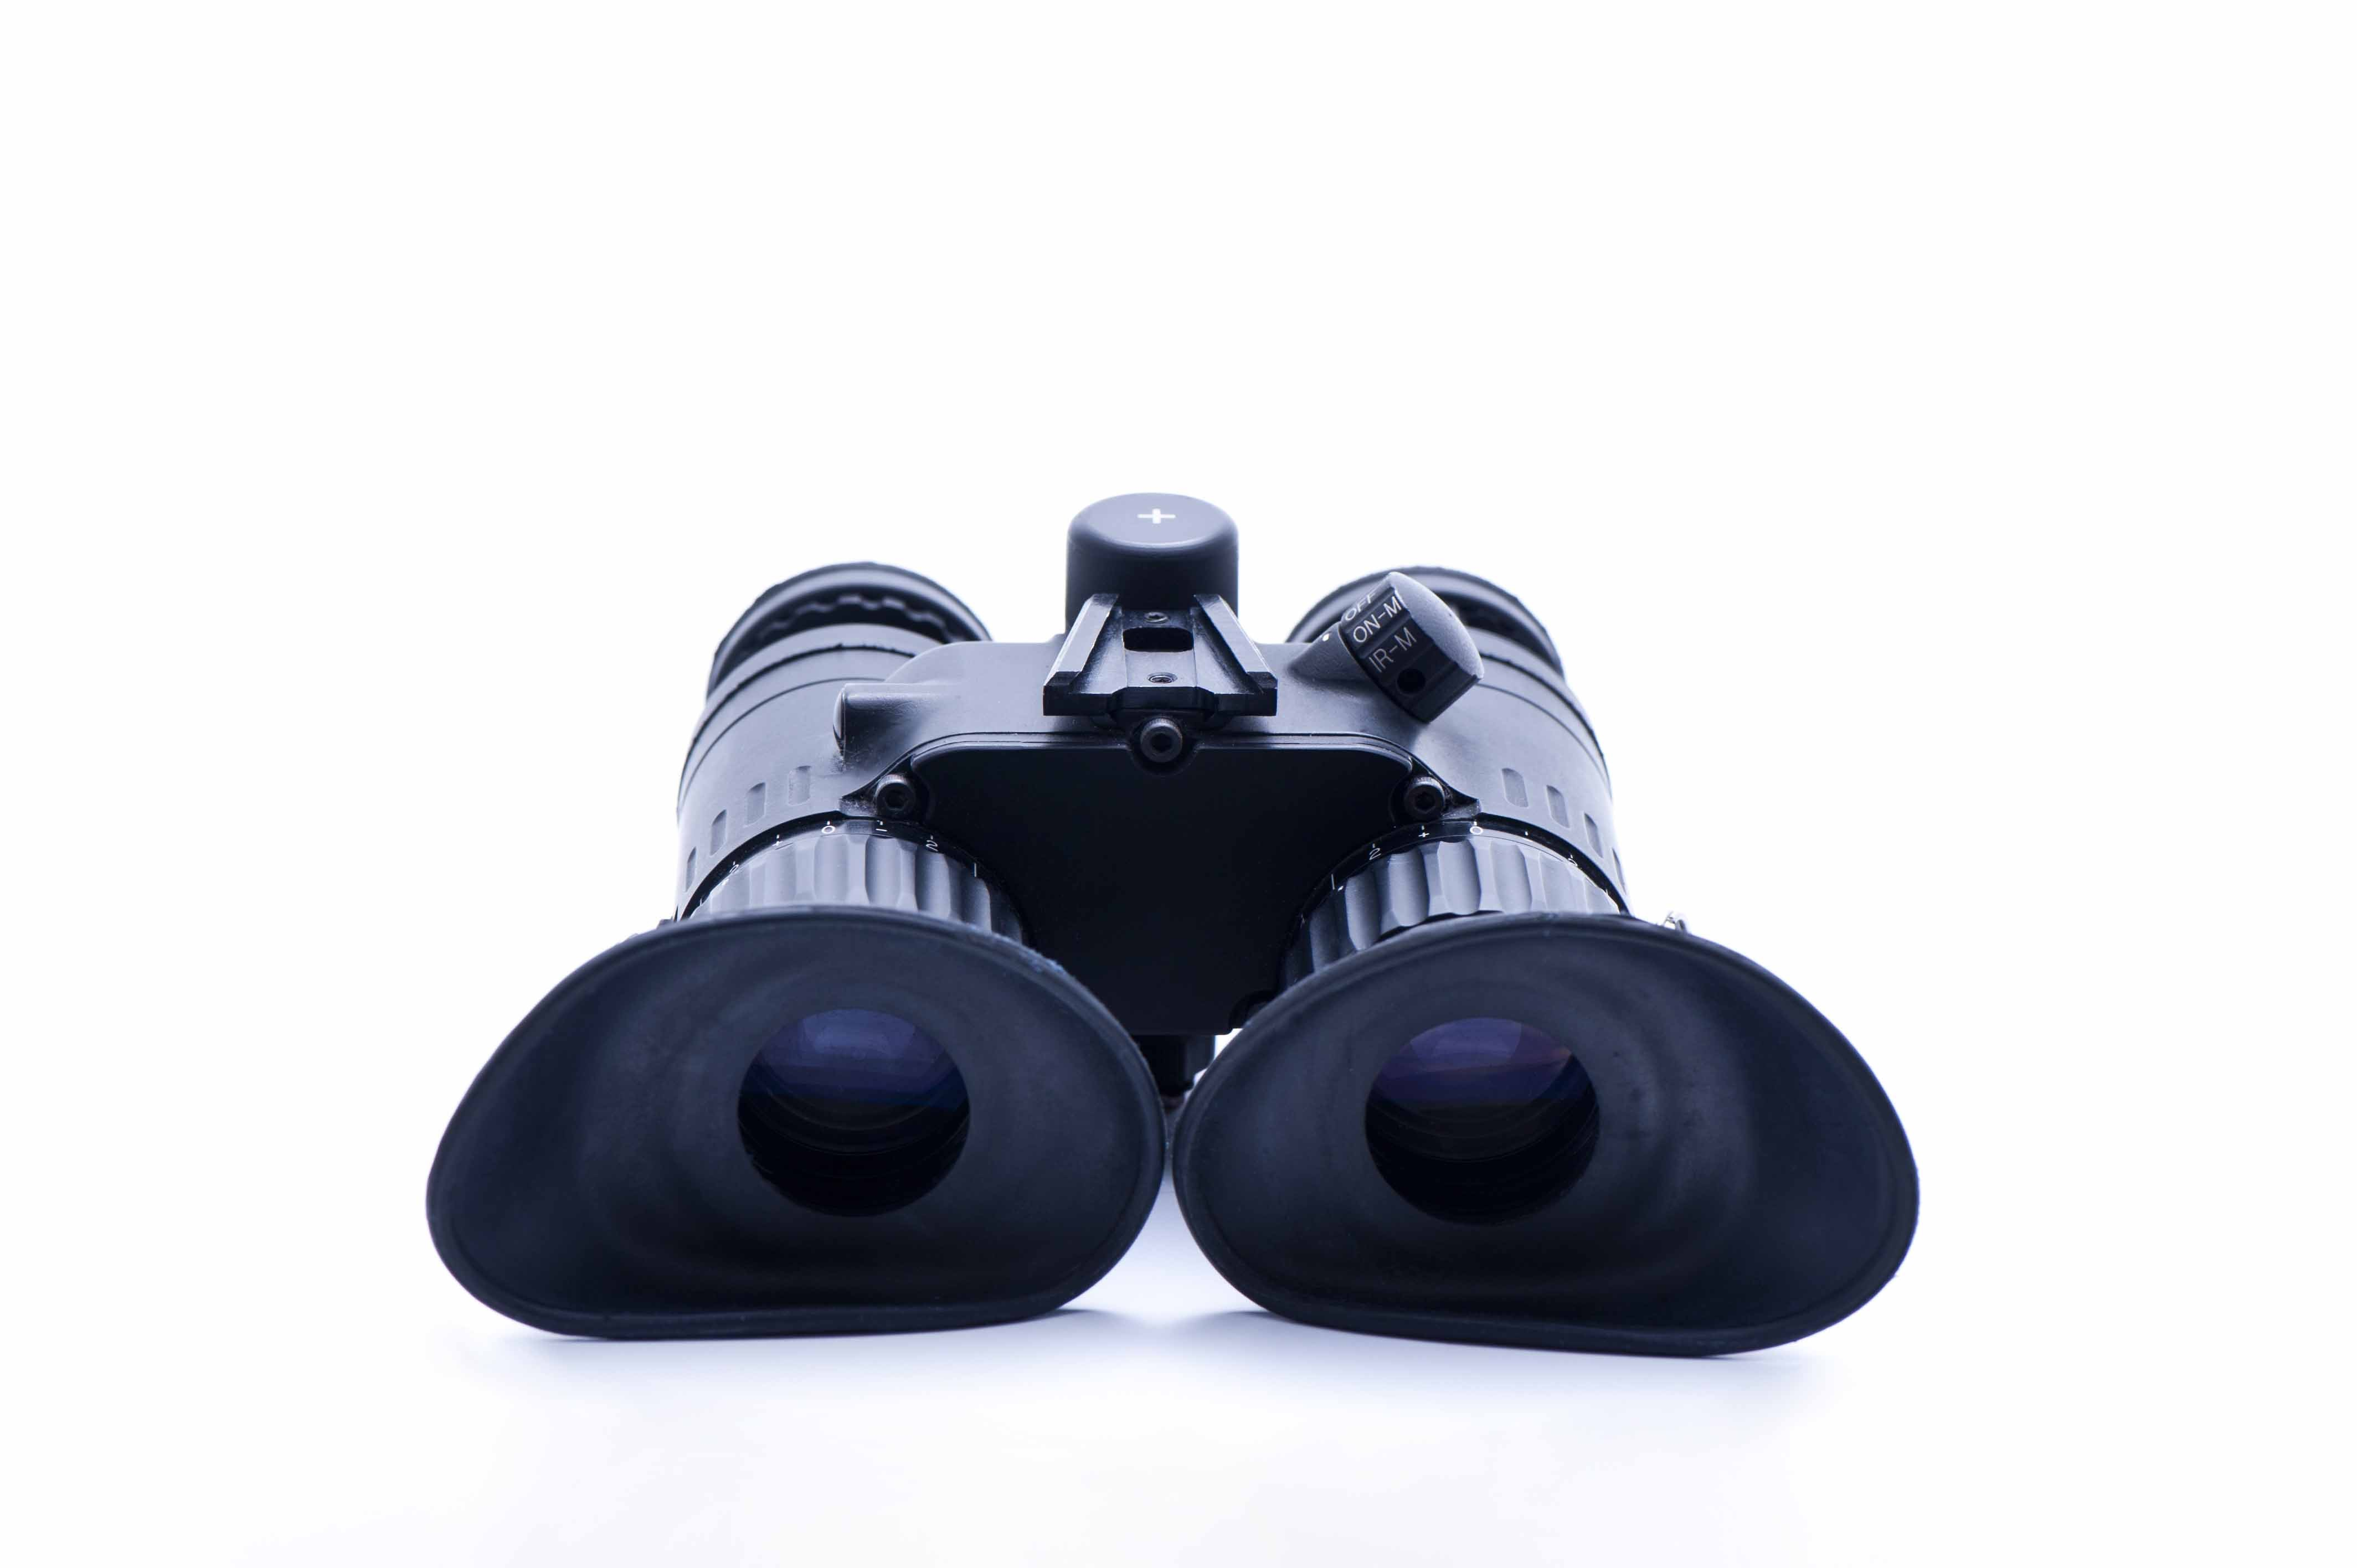 Optix-Night-Vision-Goggles-DIANA-TT-noshtni-ochila